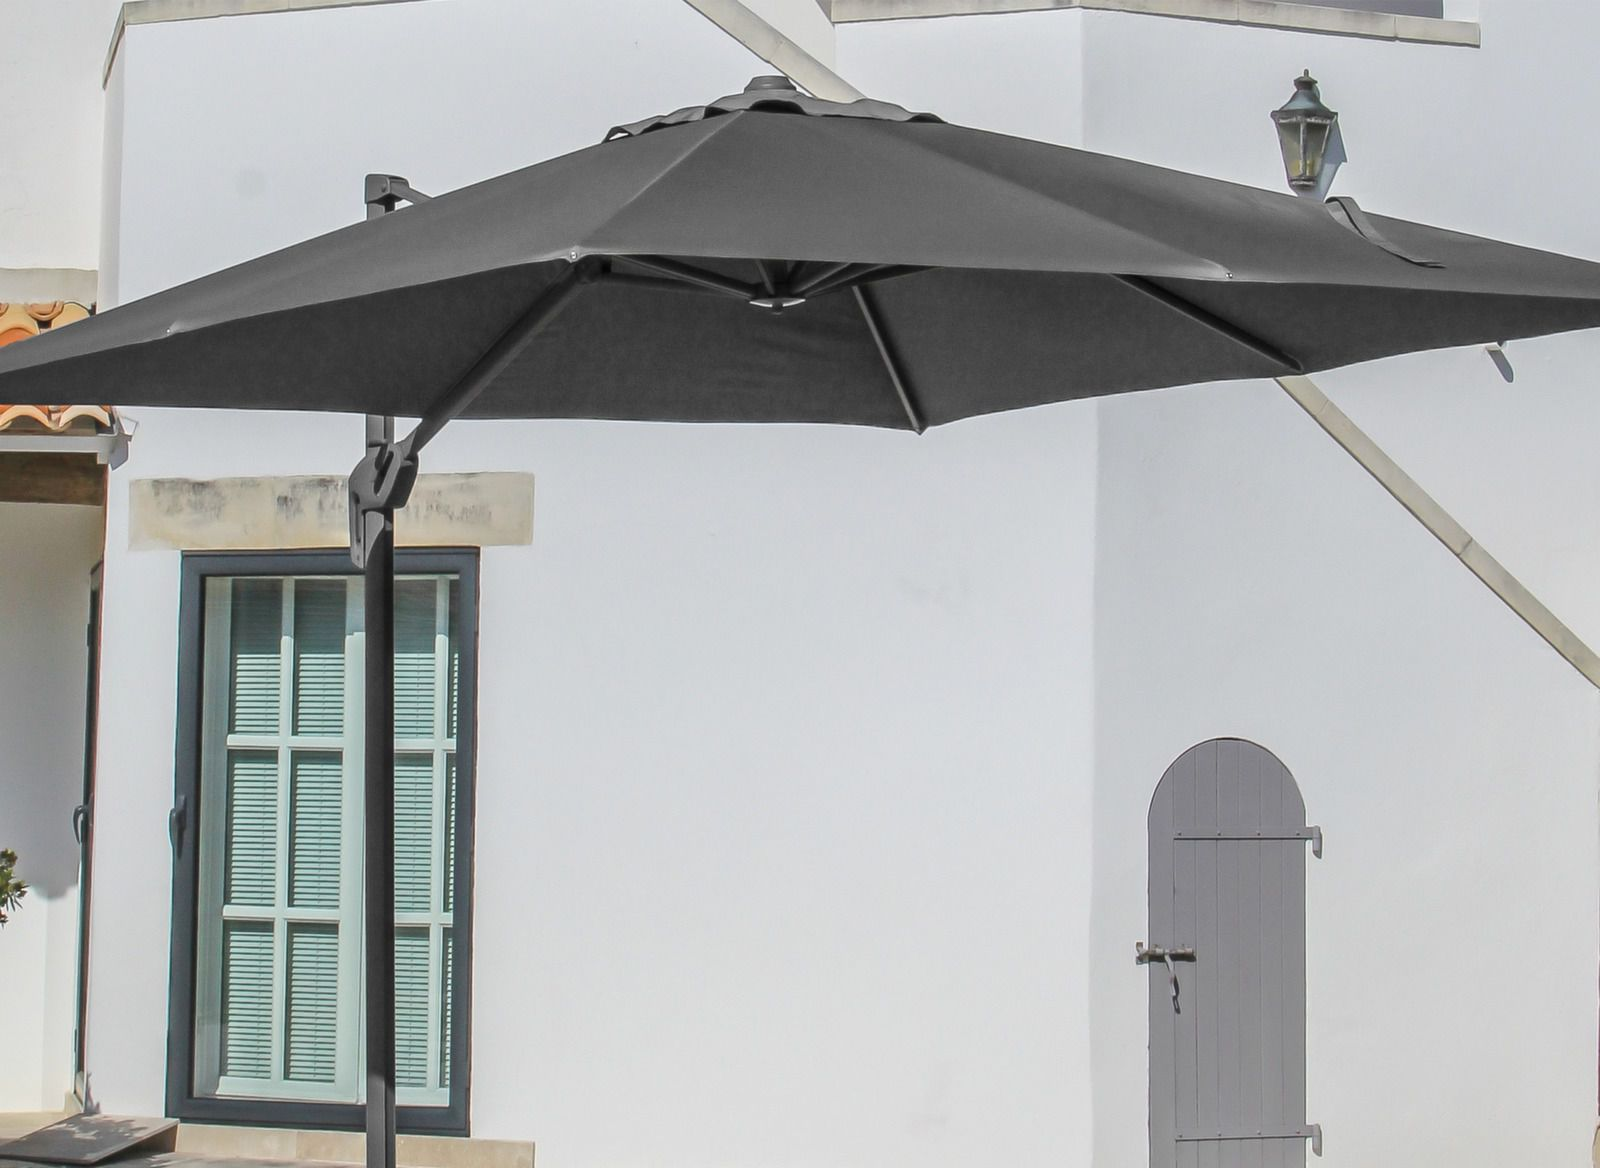 toile de parasol d port carr 3x3m accessoires parasol proloisirs. Black Bedroom Furniture Sets. Home Design Ideas